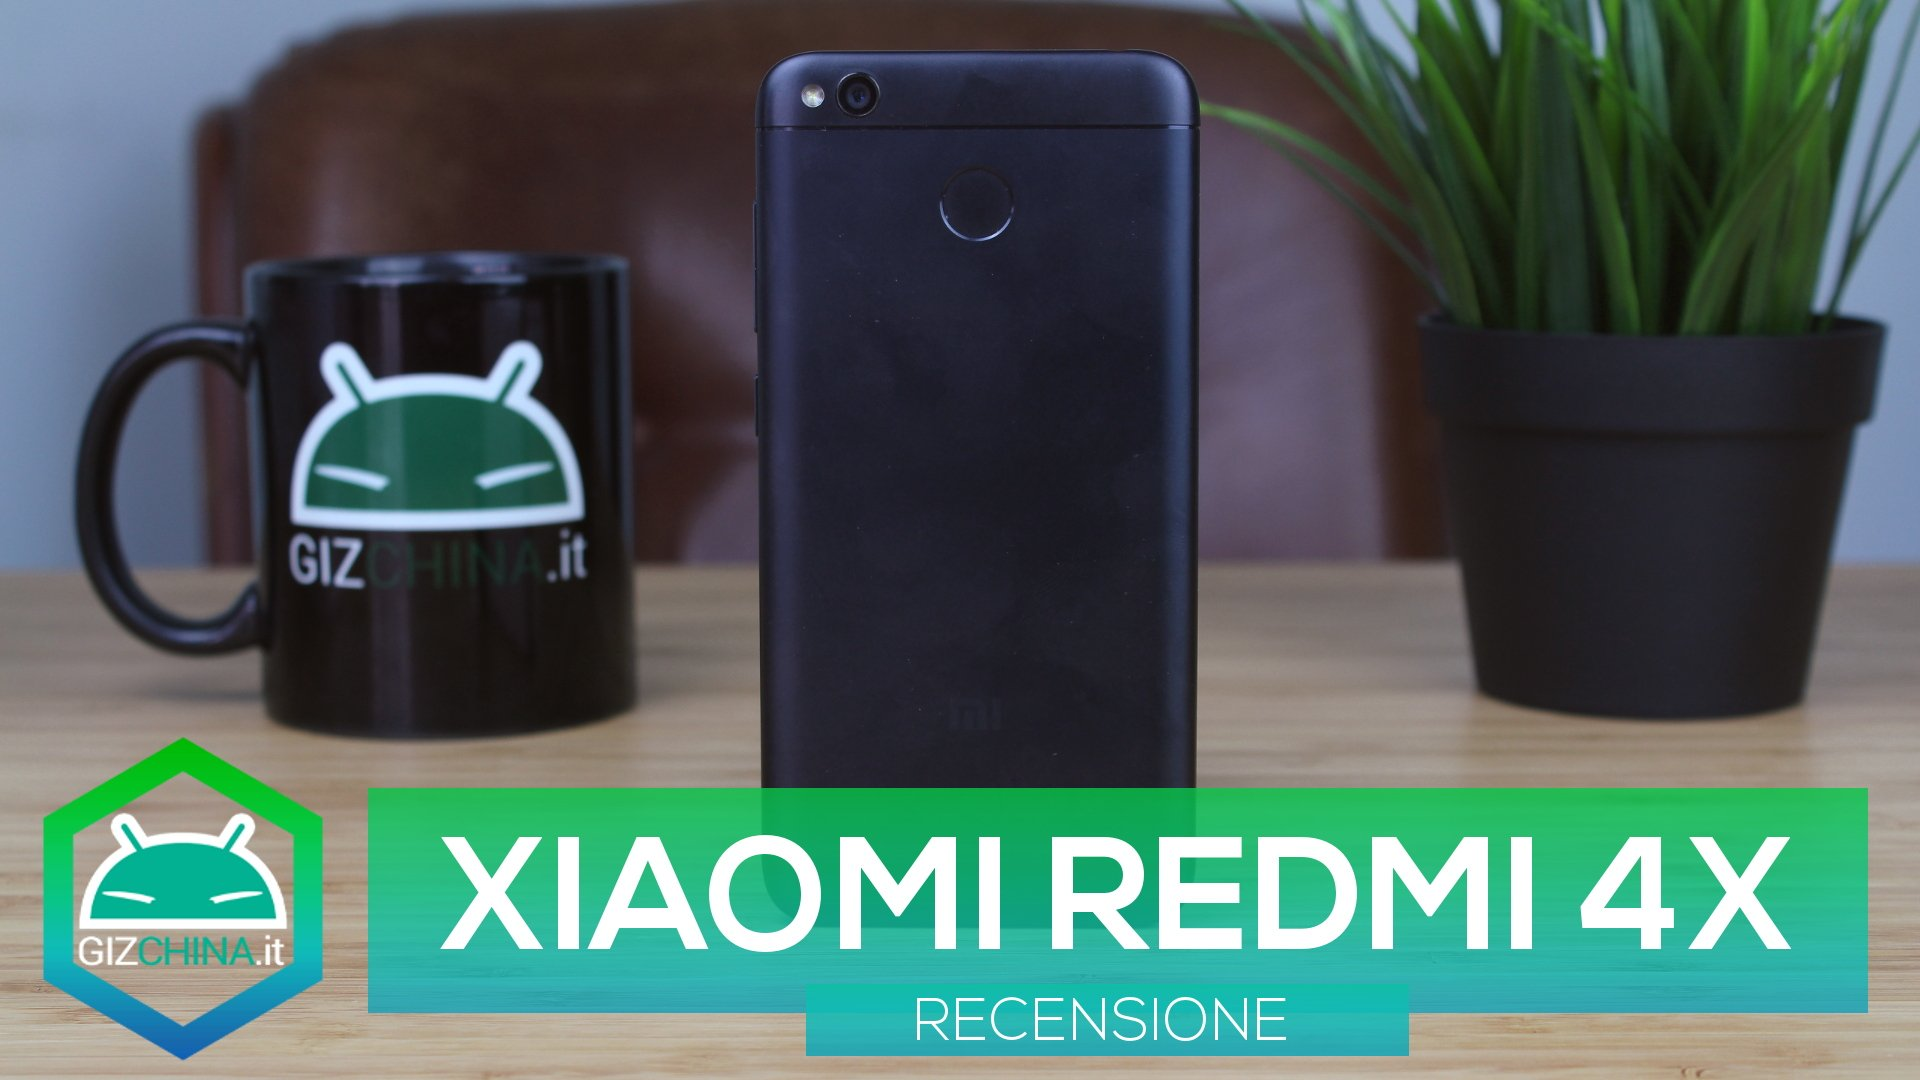 REVIEW | Xiaomi Redmi 4X: a great entry-level